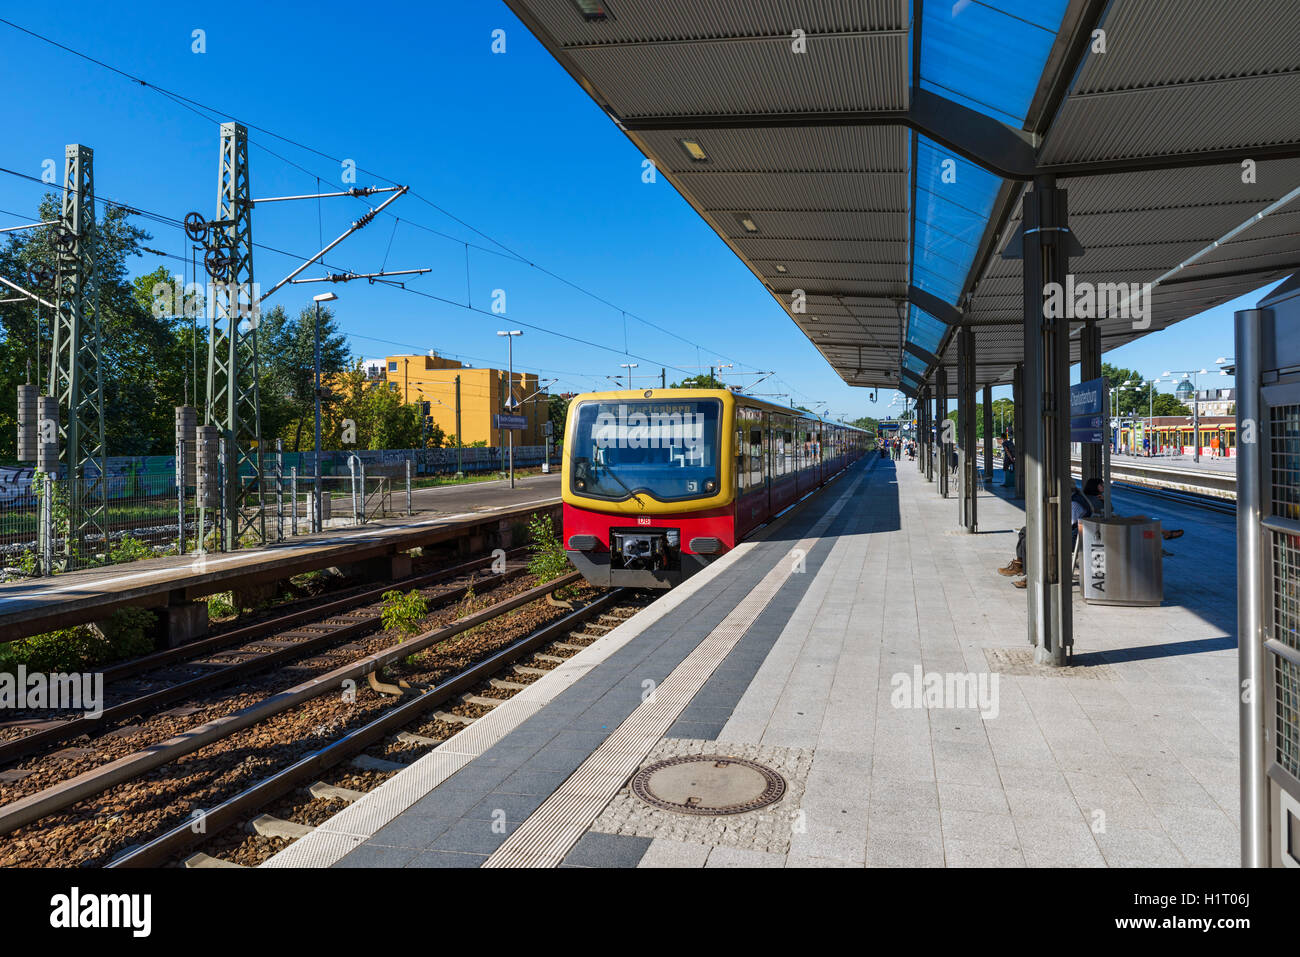 An S-Bahn train at Charlottenburg station, Berlin, Germany - Stock Image